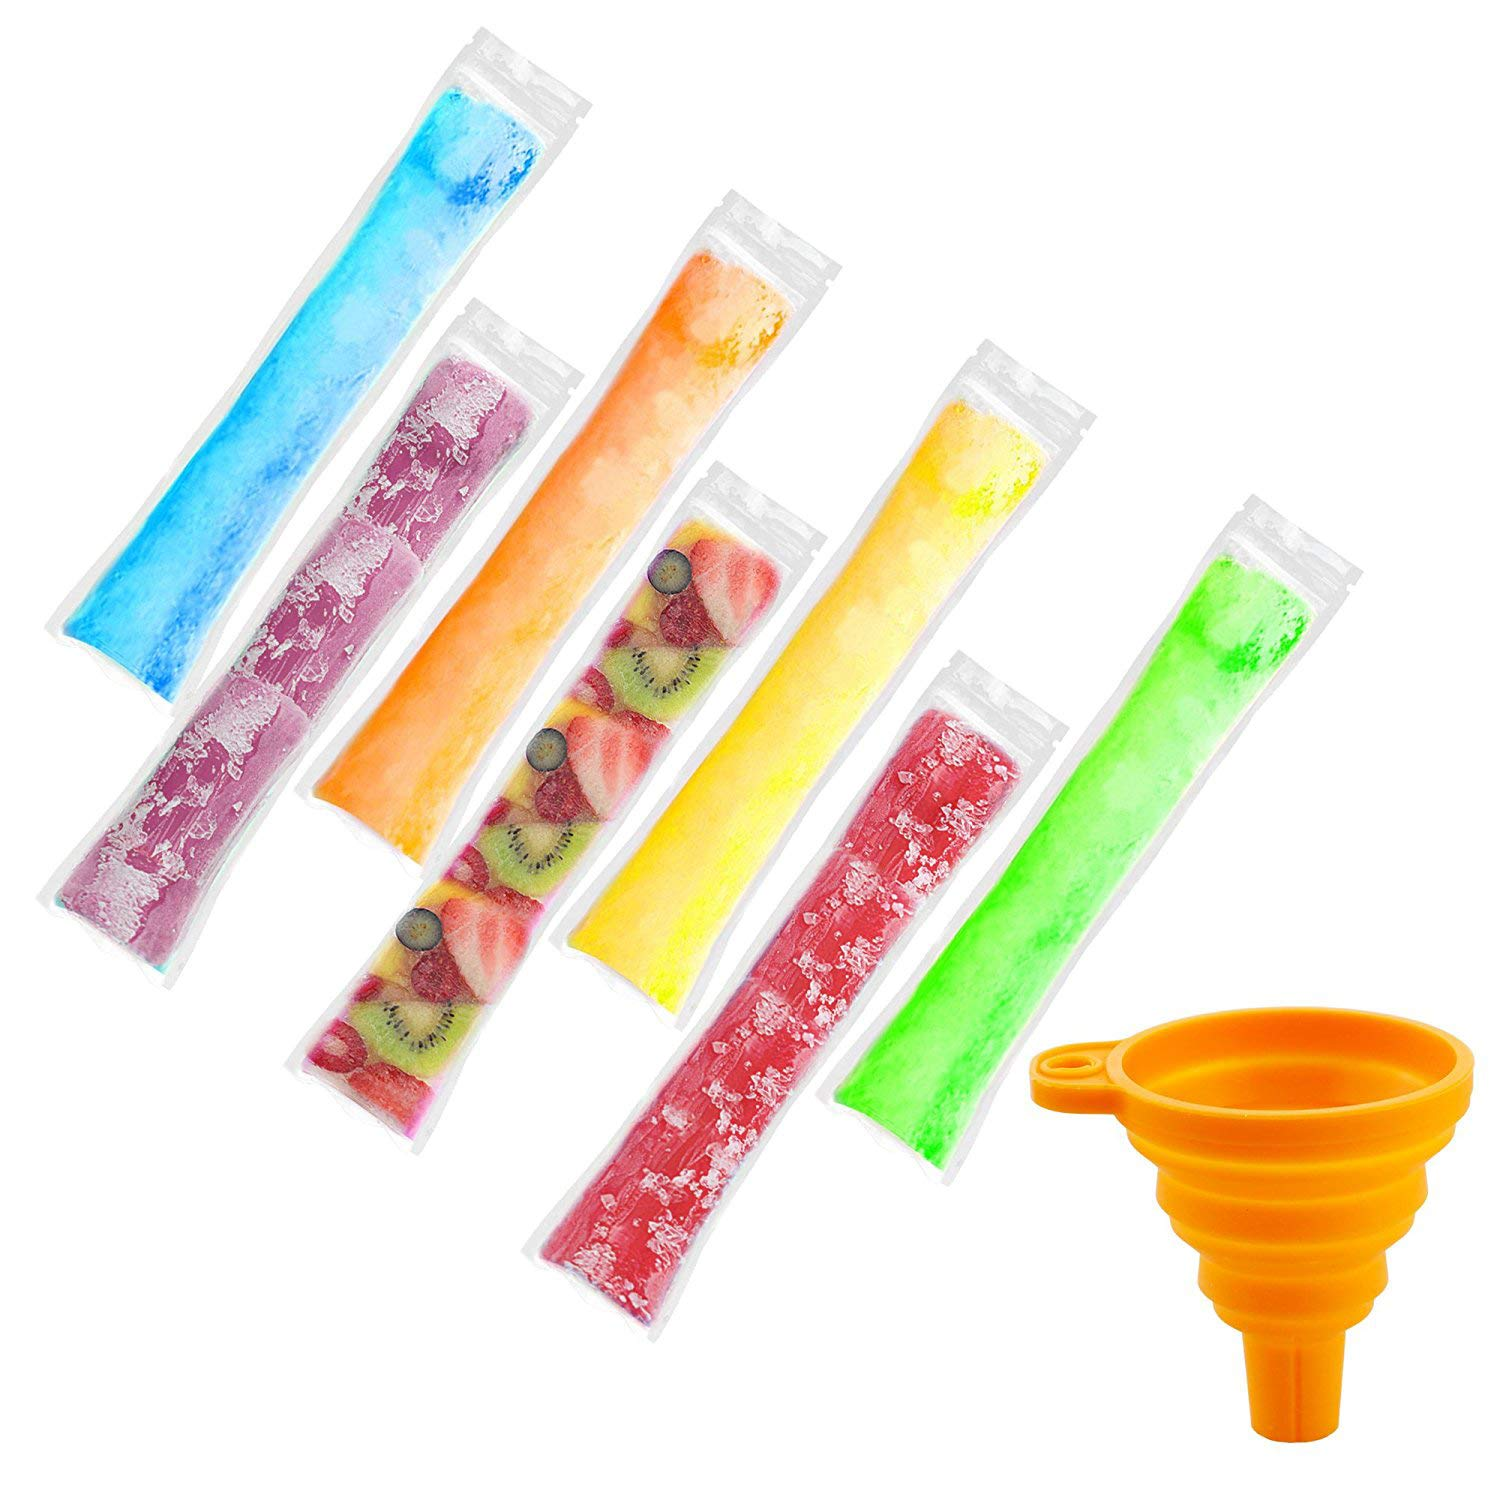 160 Pieces Ice Popsicle Molds Bags,Zip-Top Disposable DIY Ice Pop Mold Bags for Gogurt, Ice Candy, Otter Pops or Freeze Pops-Comes with A Orange Color Funnel ONEONEY